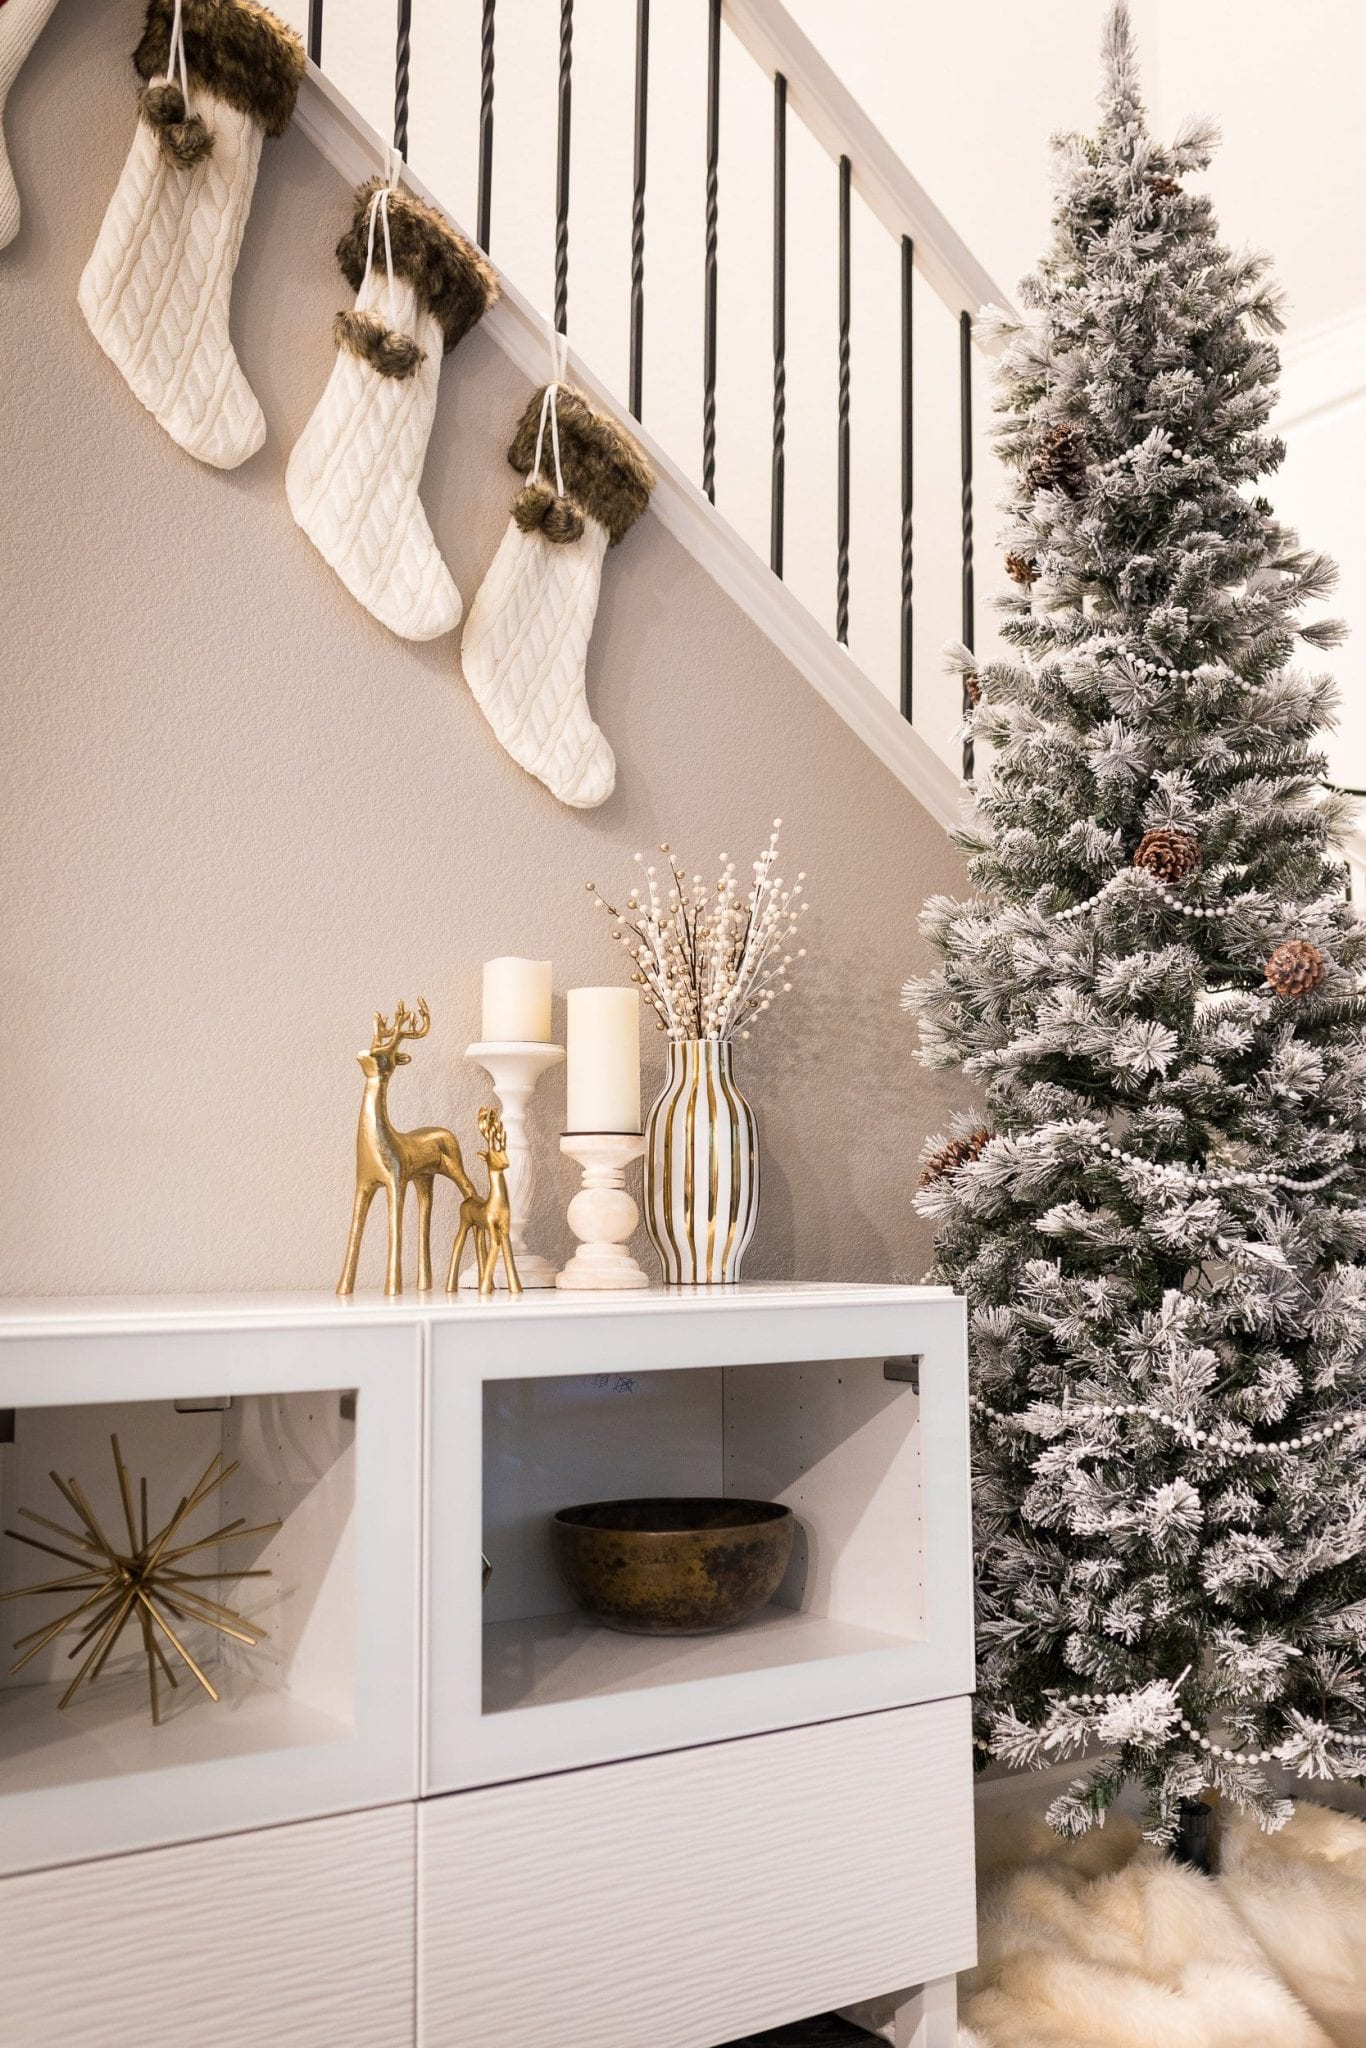 18 Affordable Chic White Christmas Decor Ideas To Turn Your House Into A Winter Wonderland Never Skip Brunch